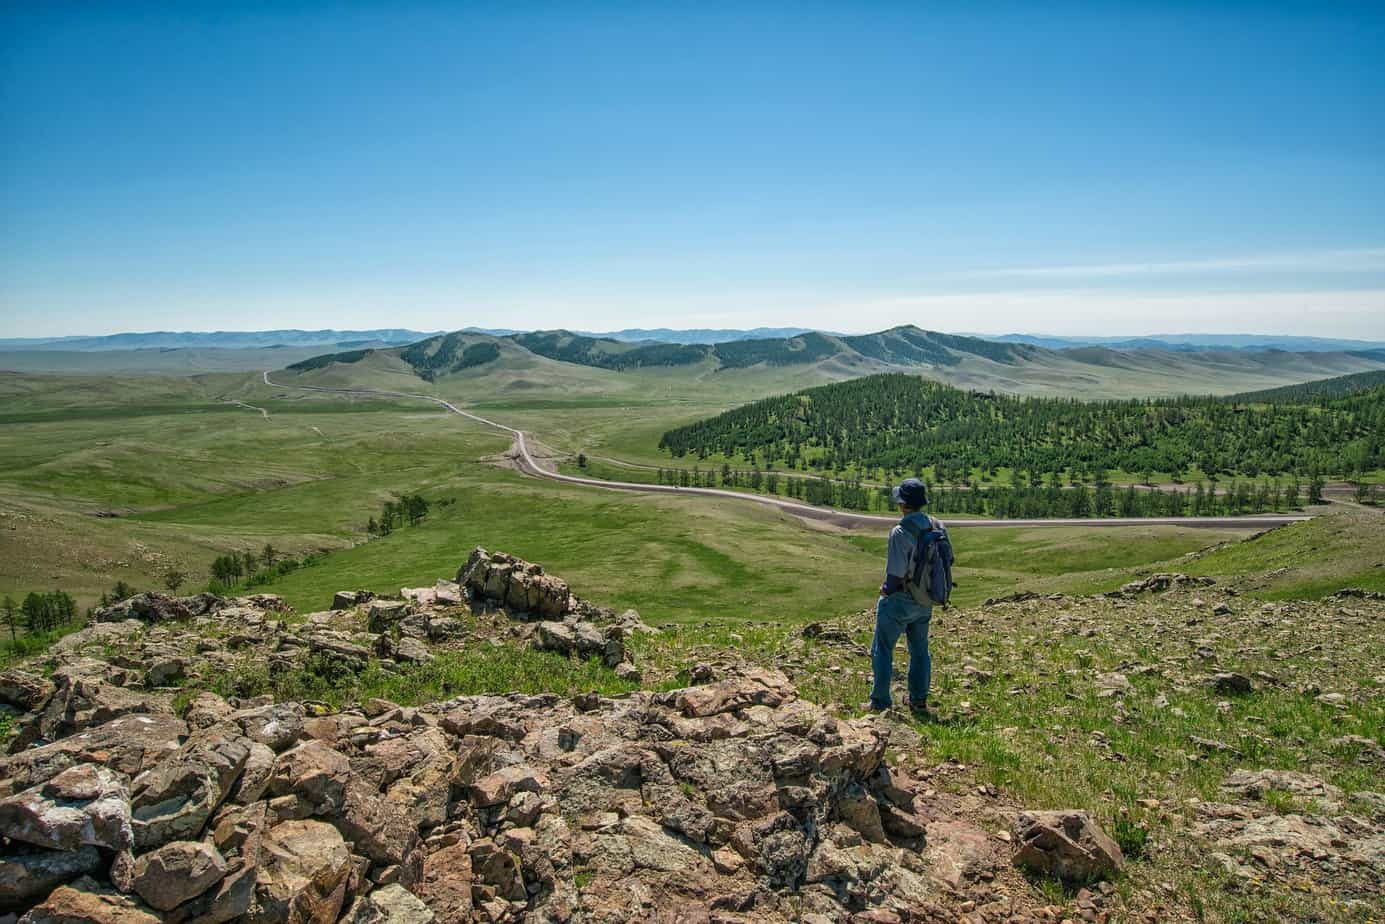 Bucket List Addition: Mongolia